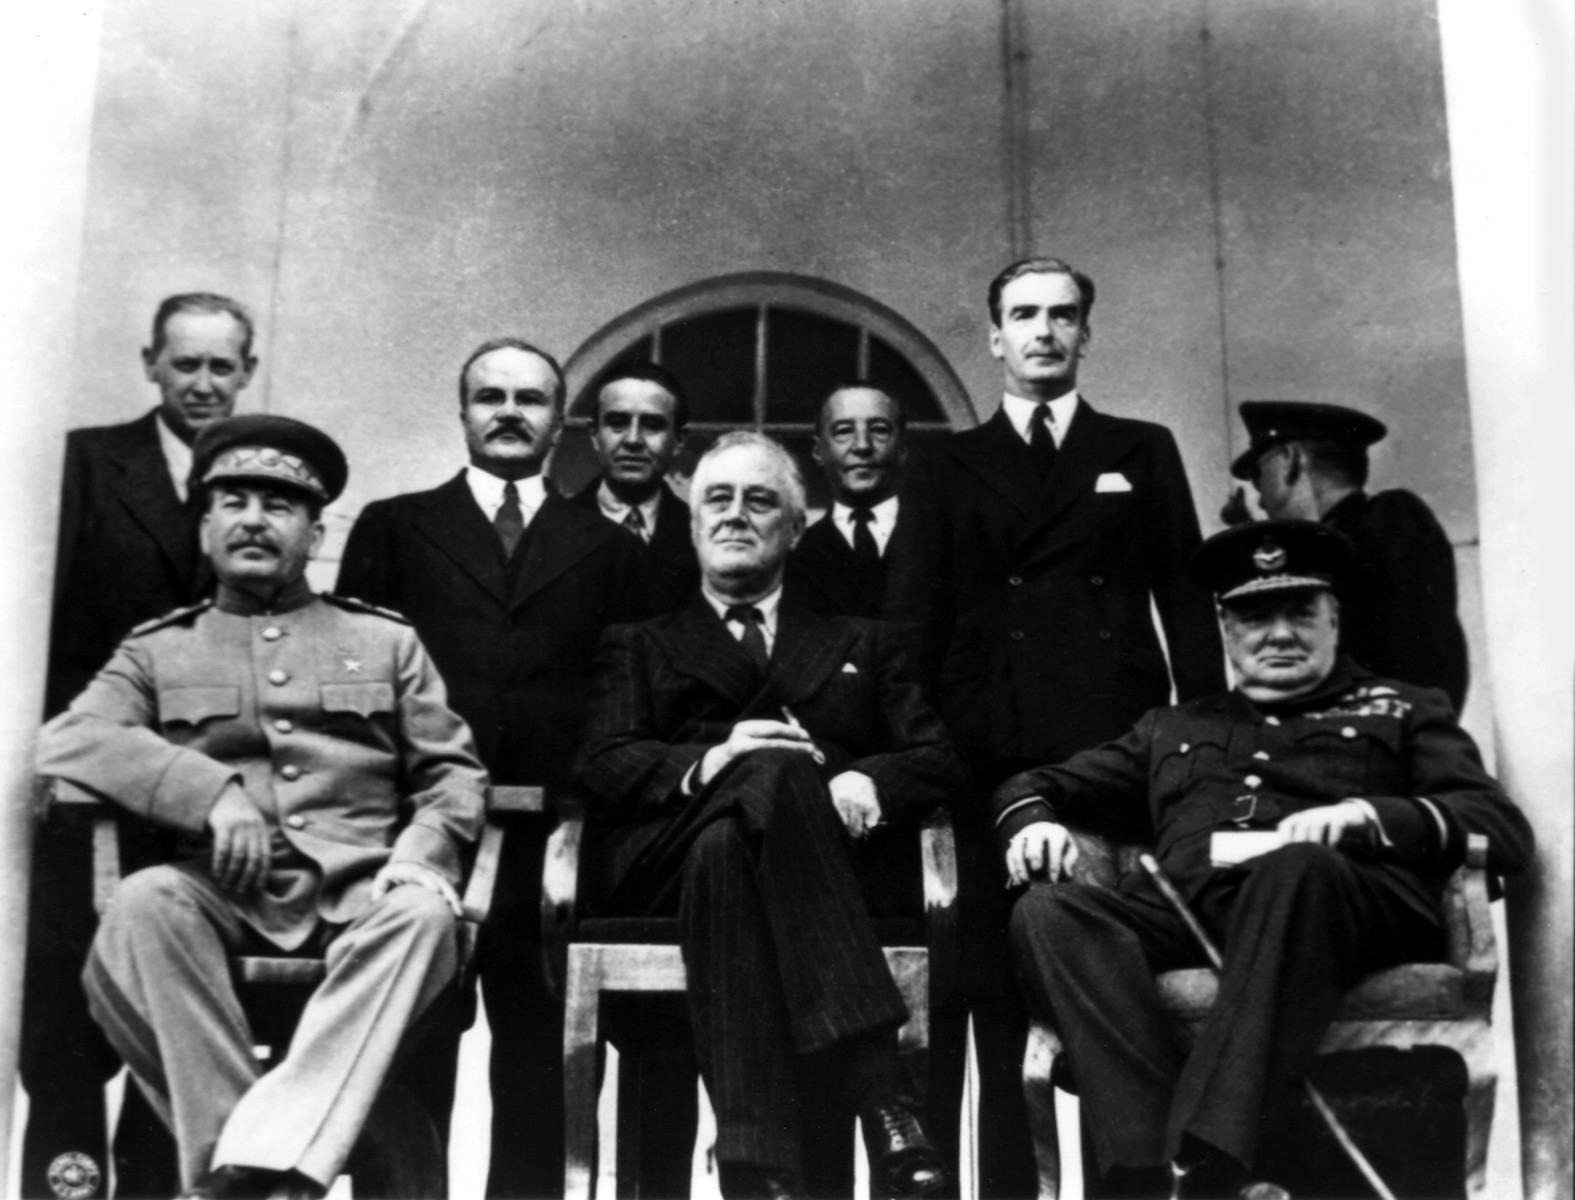 [Original caption] Teheran conference. From the l. to the r.: Joseph Stalin, Franklin D. Roosevelt and Winston Churchill, 1943, Iran - World War II. (Photo by: Photo12/UIG via Getty Images)